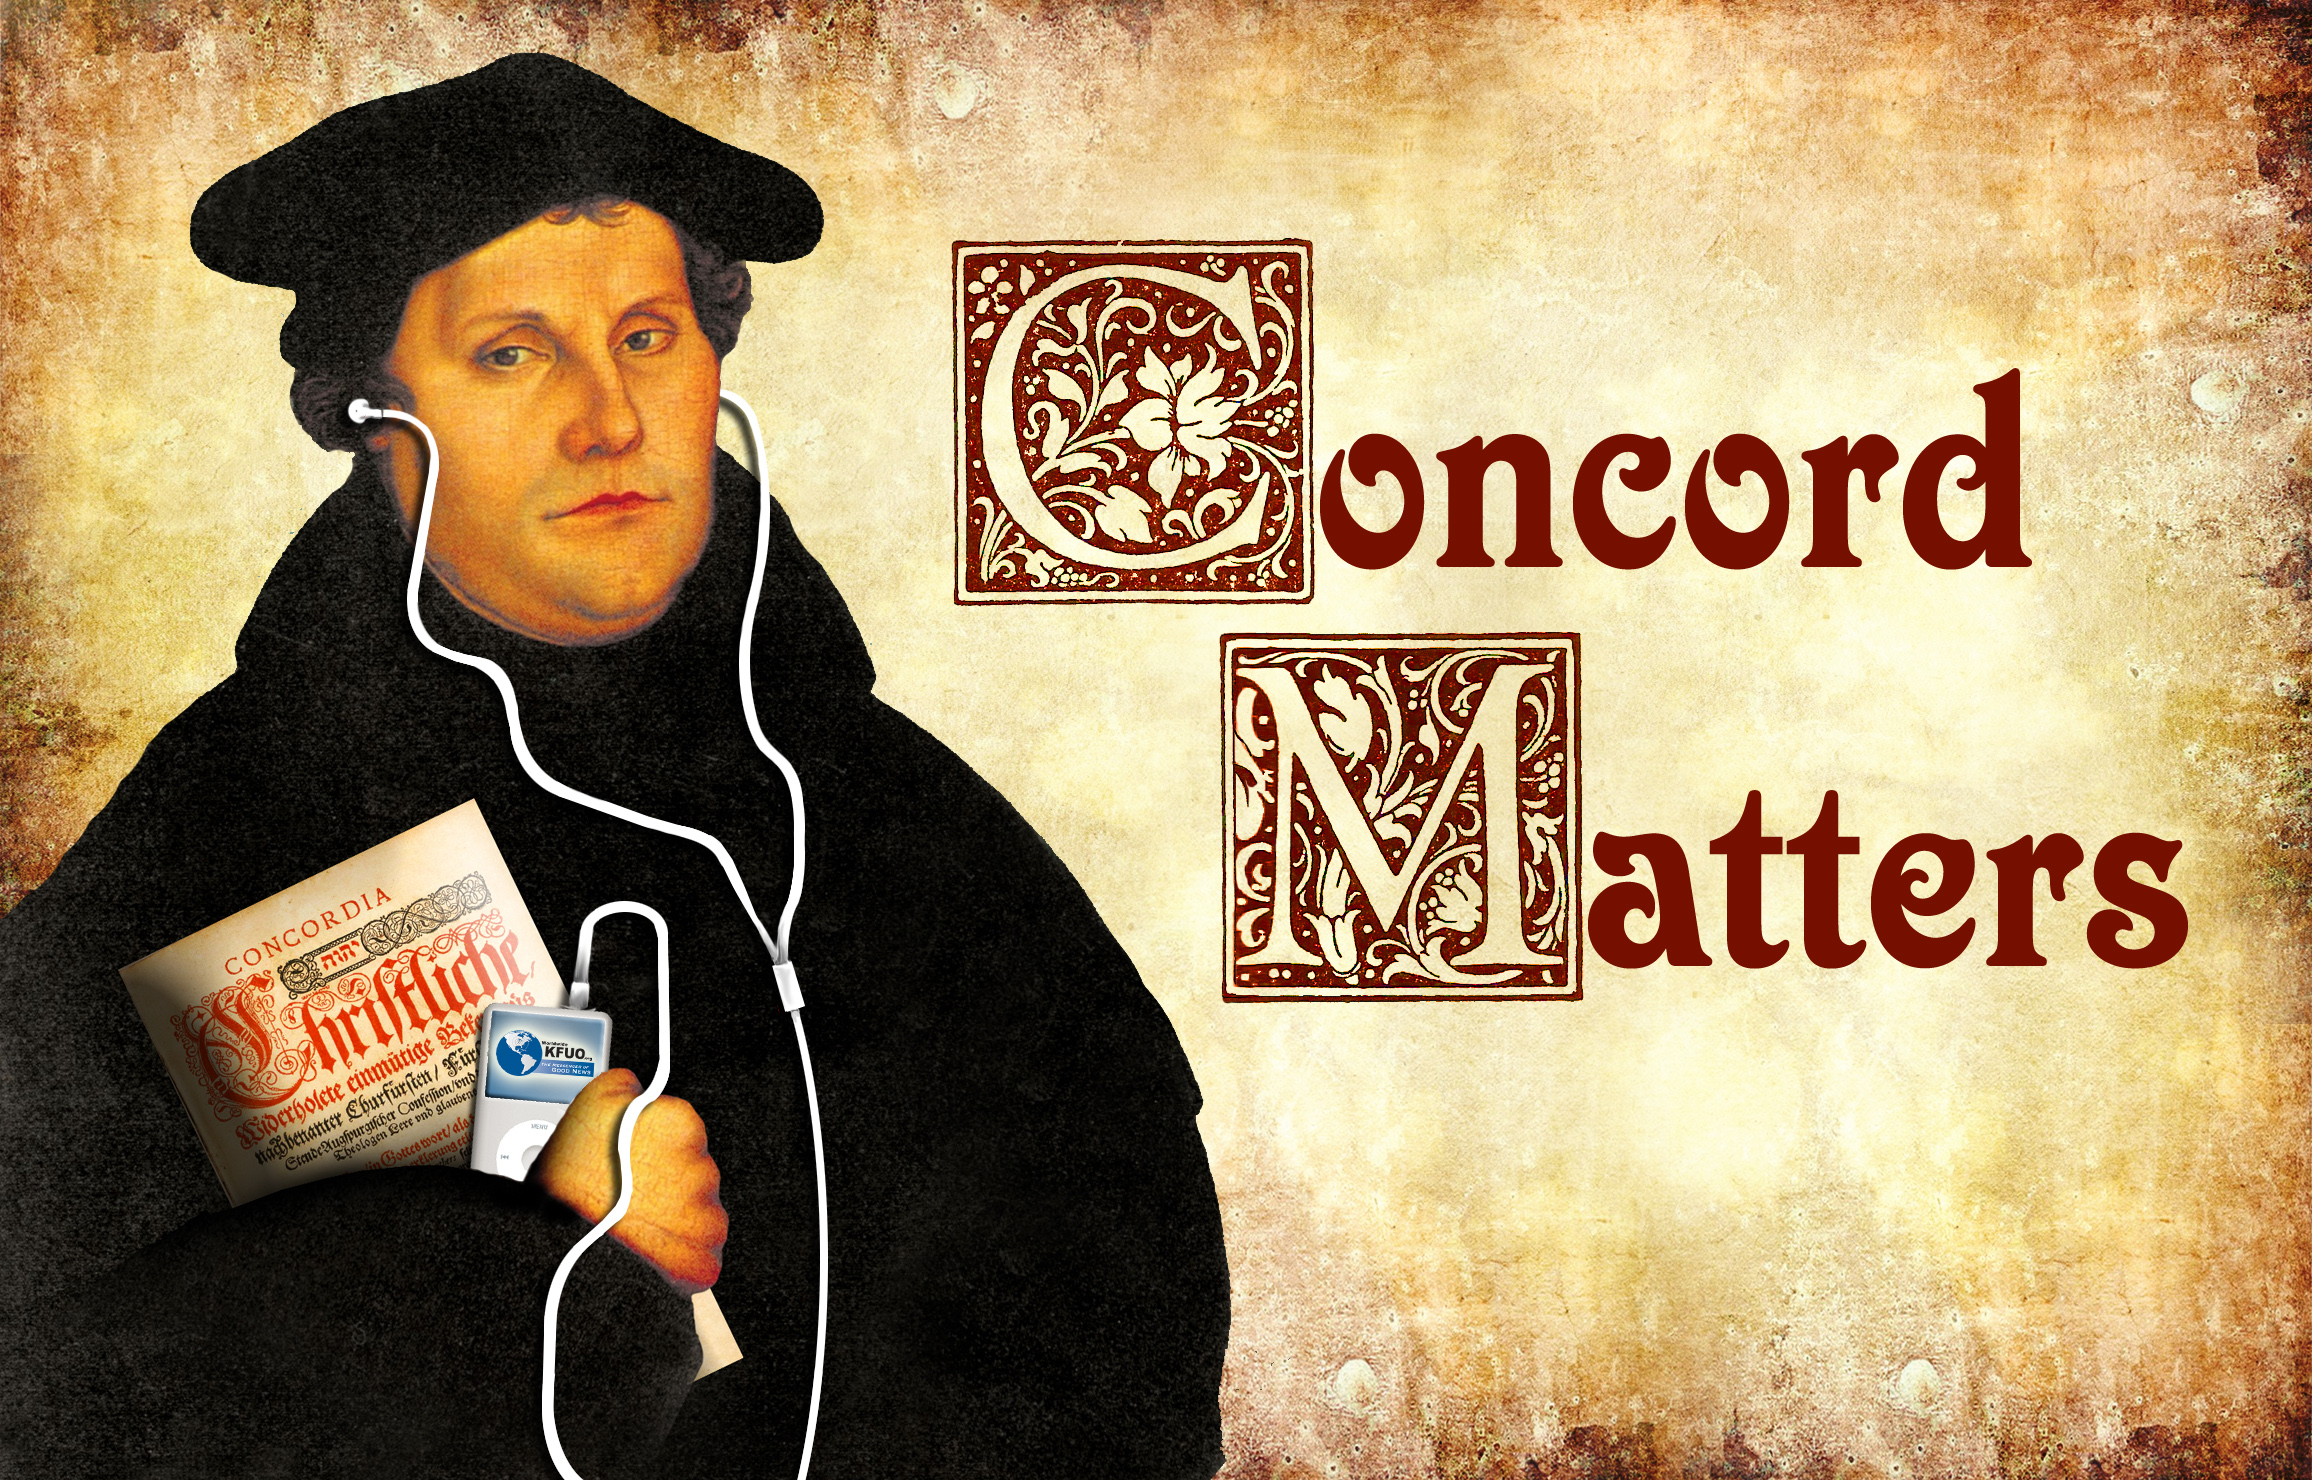 Concord Matters